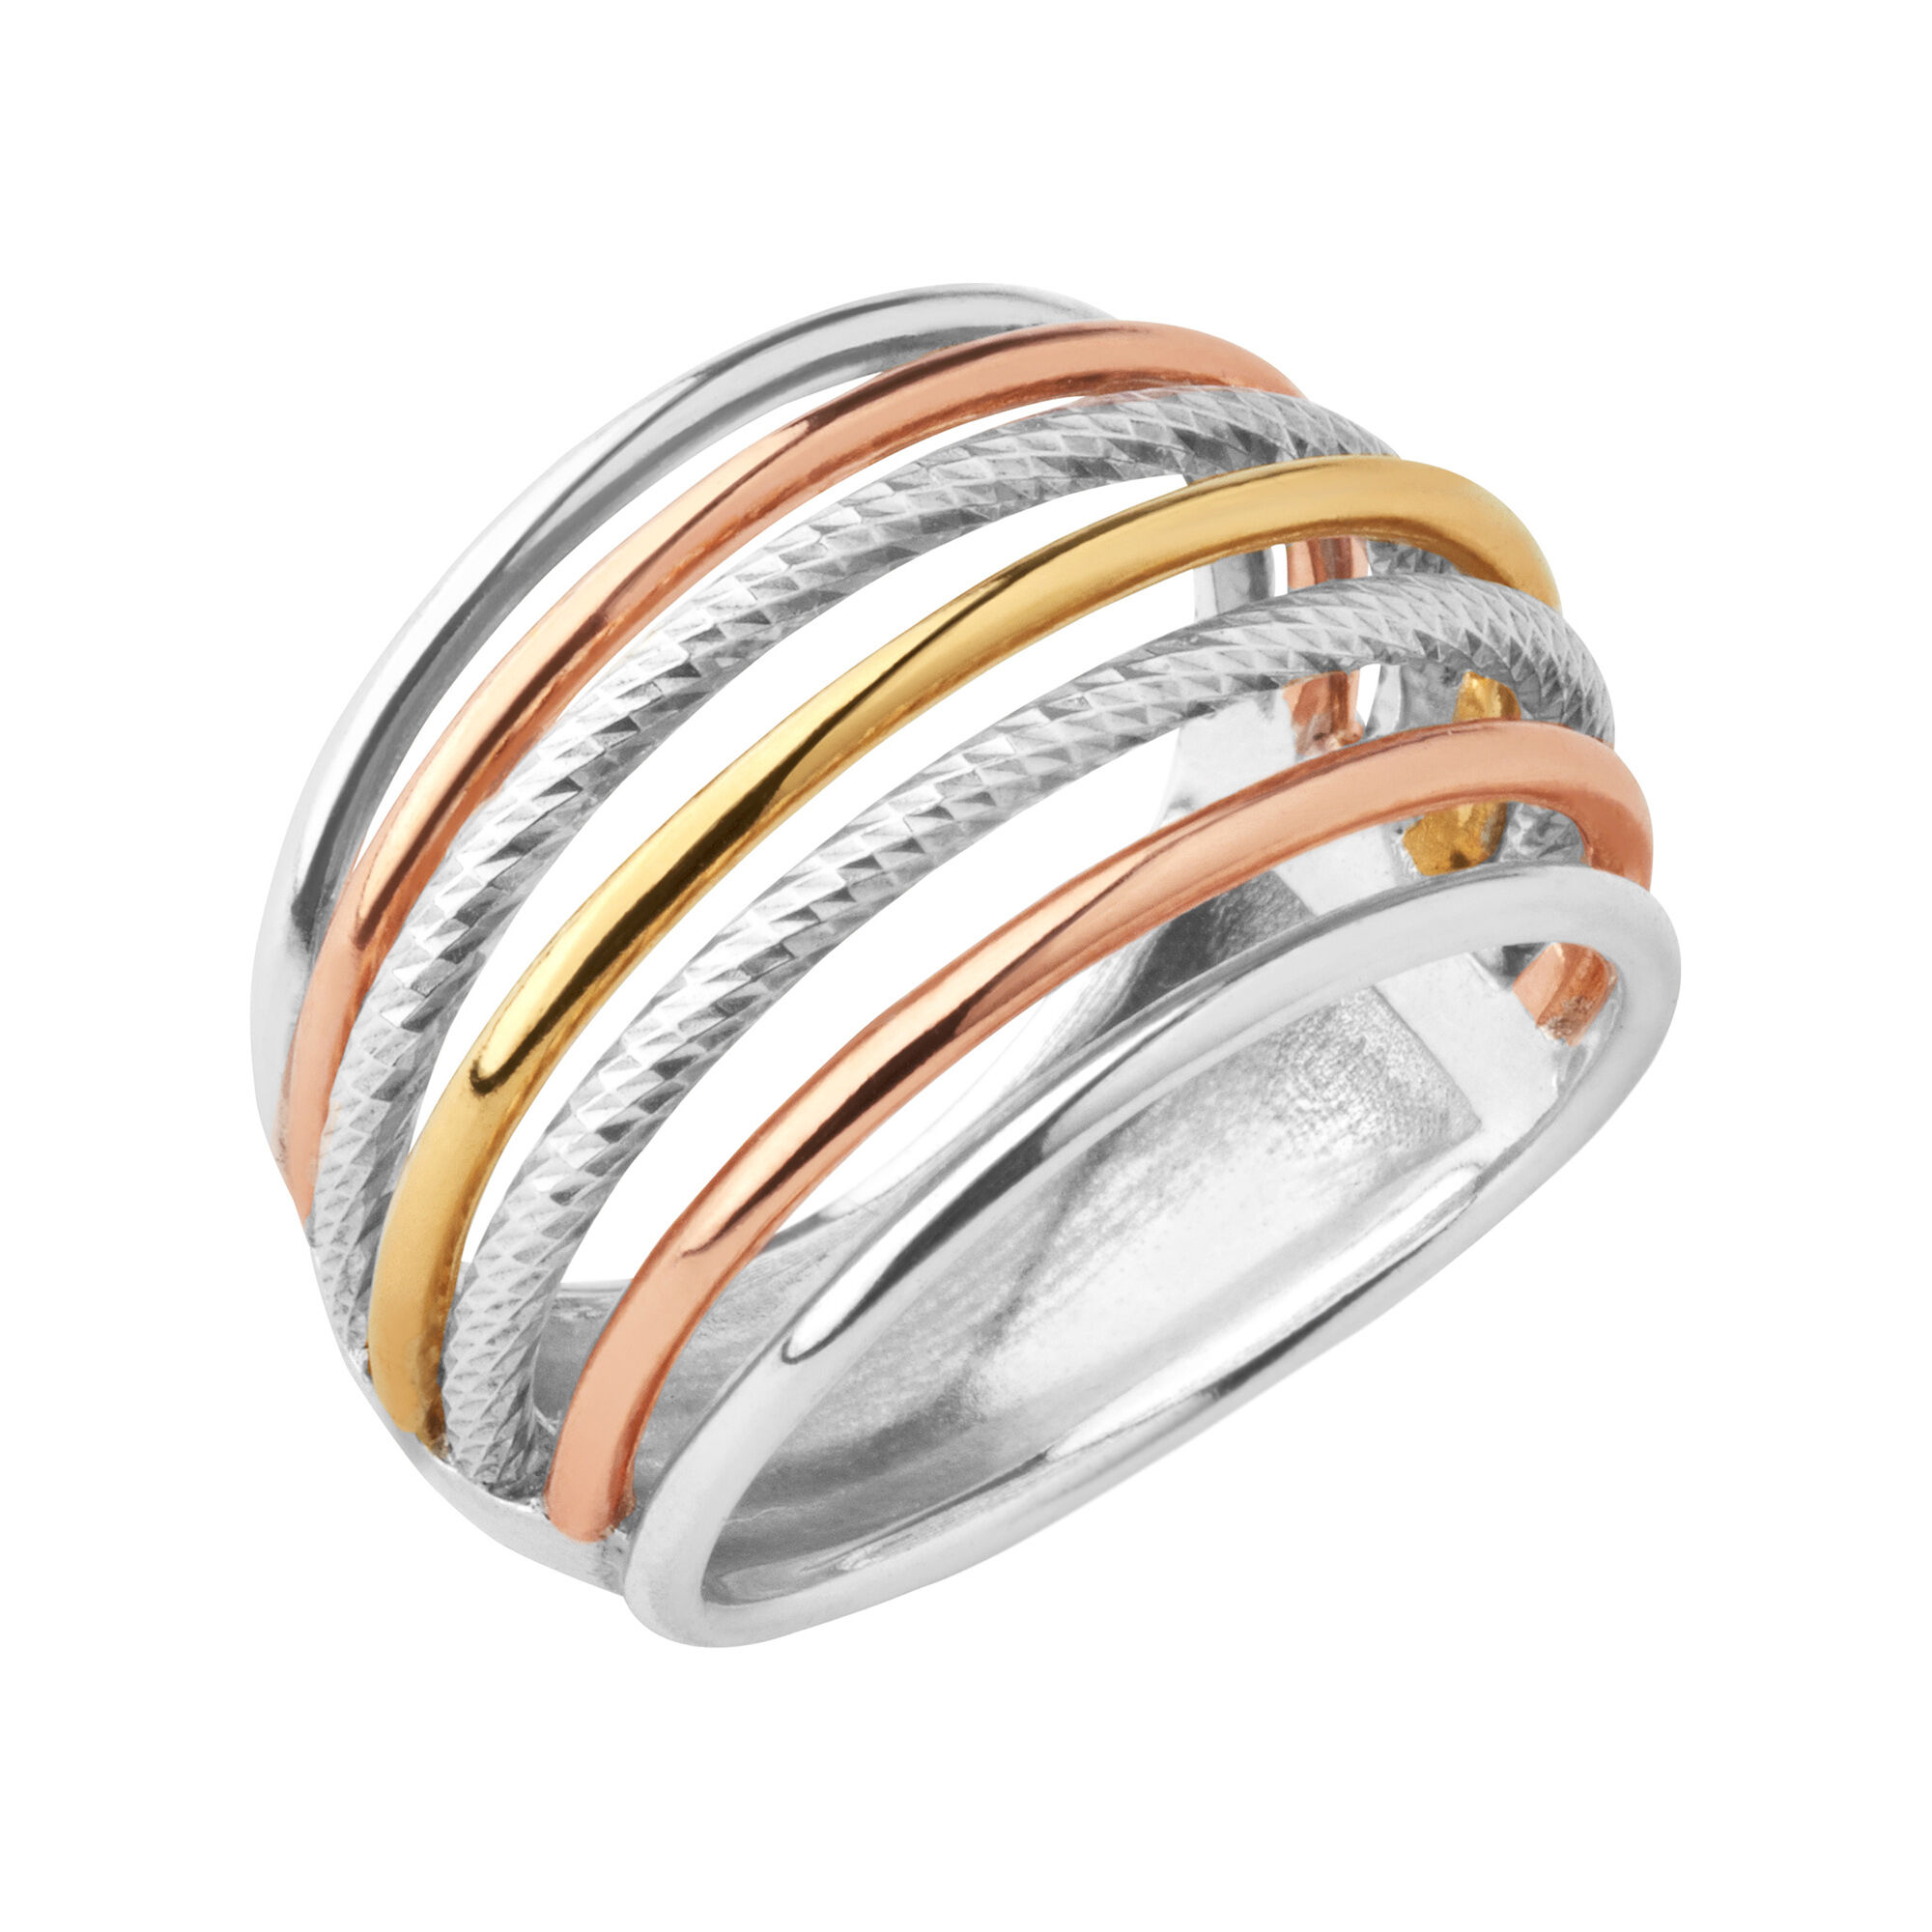 and mixed mccaul bands bi showcase wedding rings men combining yellow metal or for goldsmiths white s carat mens